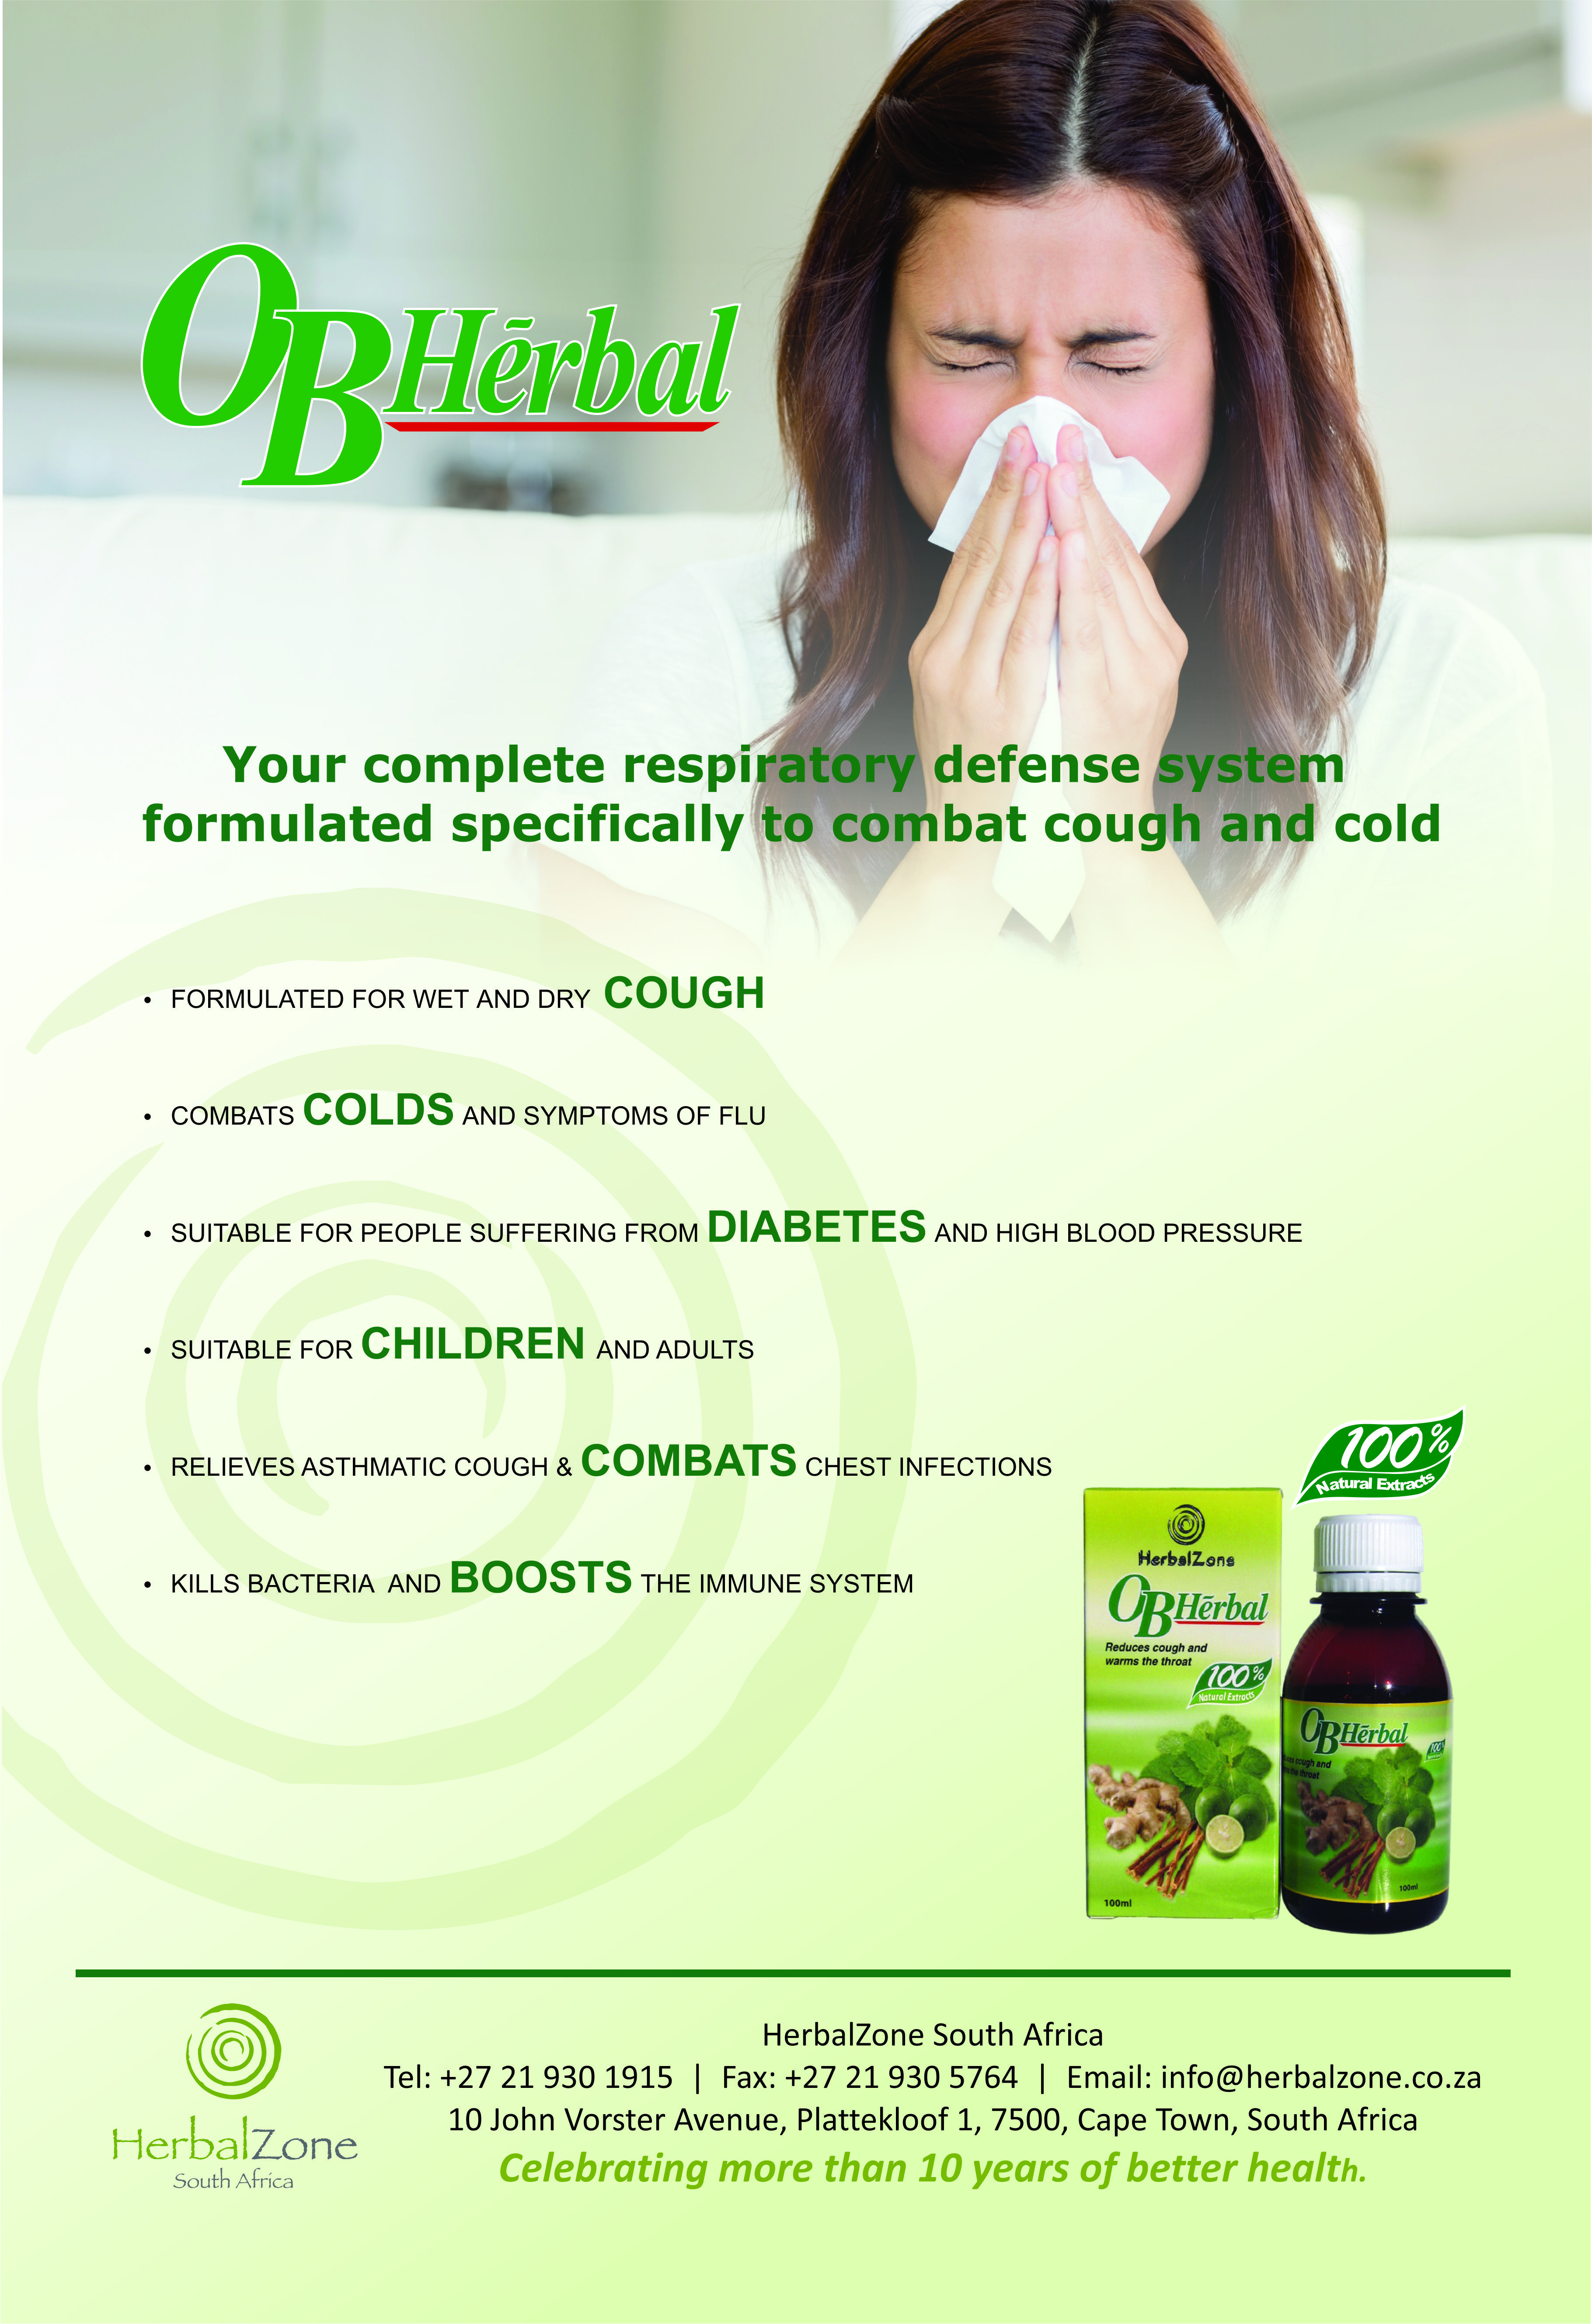 OB Herbal image by Herbal Zone South Africa (PTY) Chest